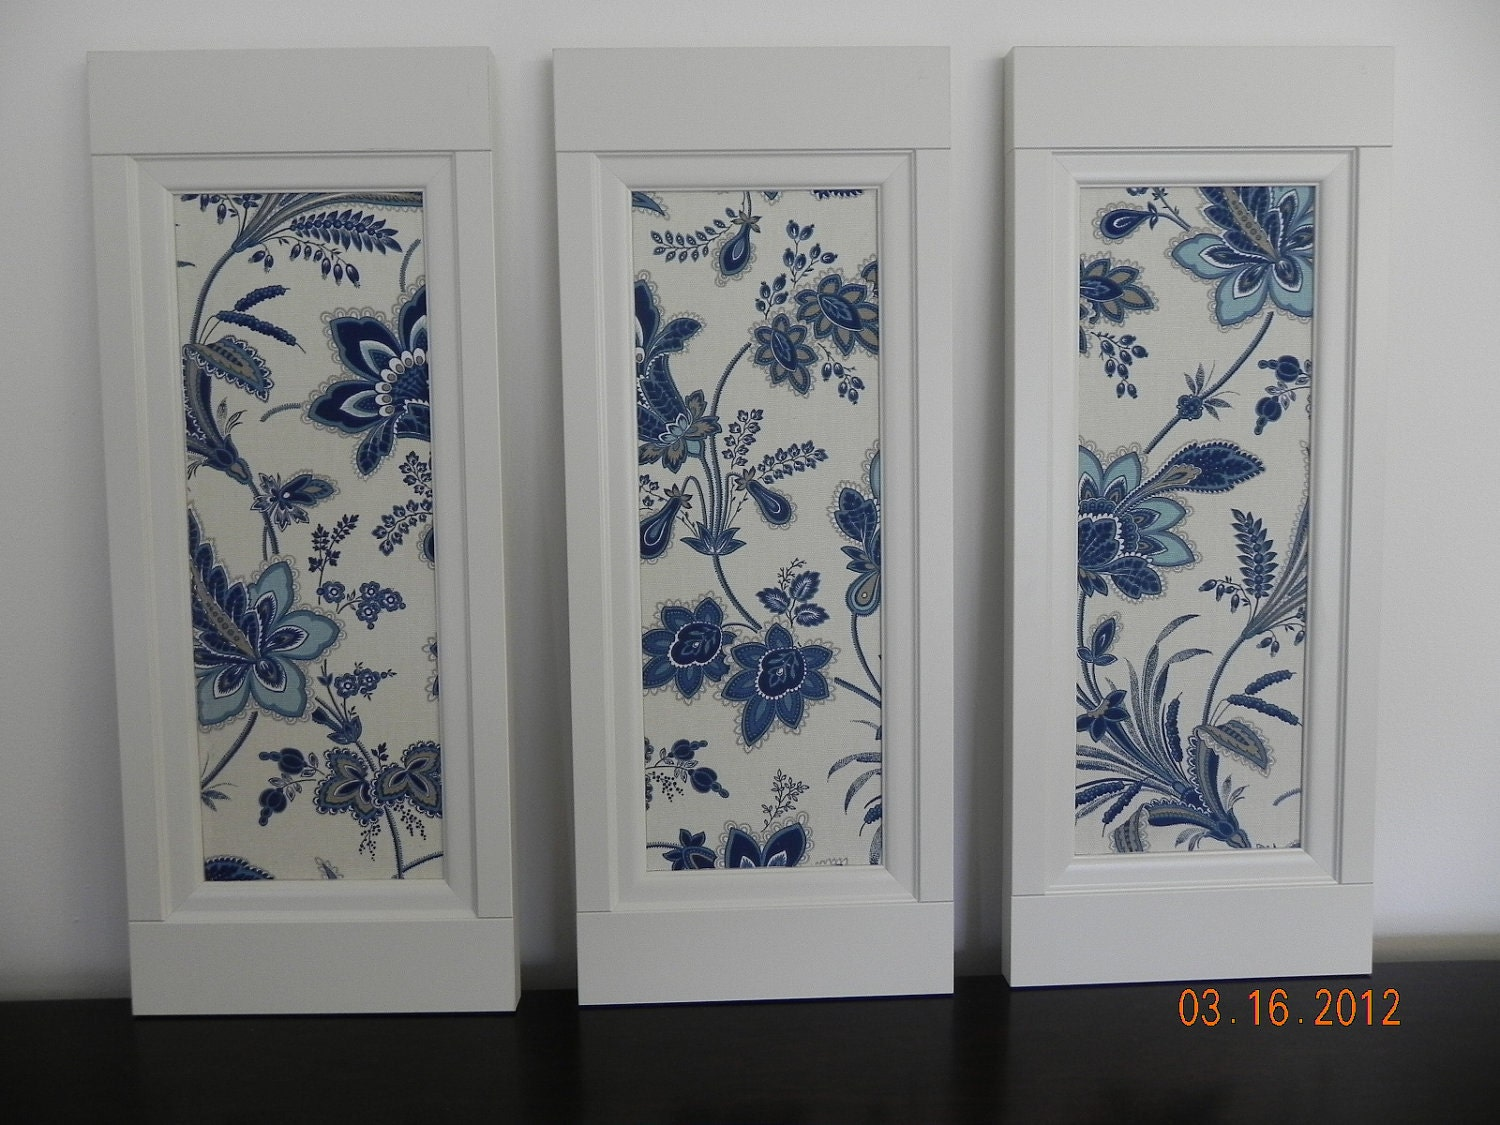 Wall Decor With Cloth : Items similar to handmade wall decor wooden frame fabric